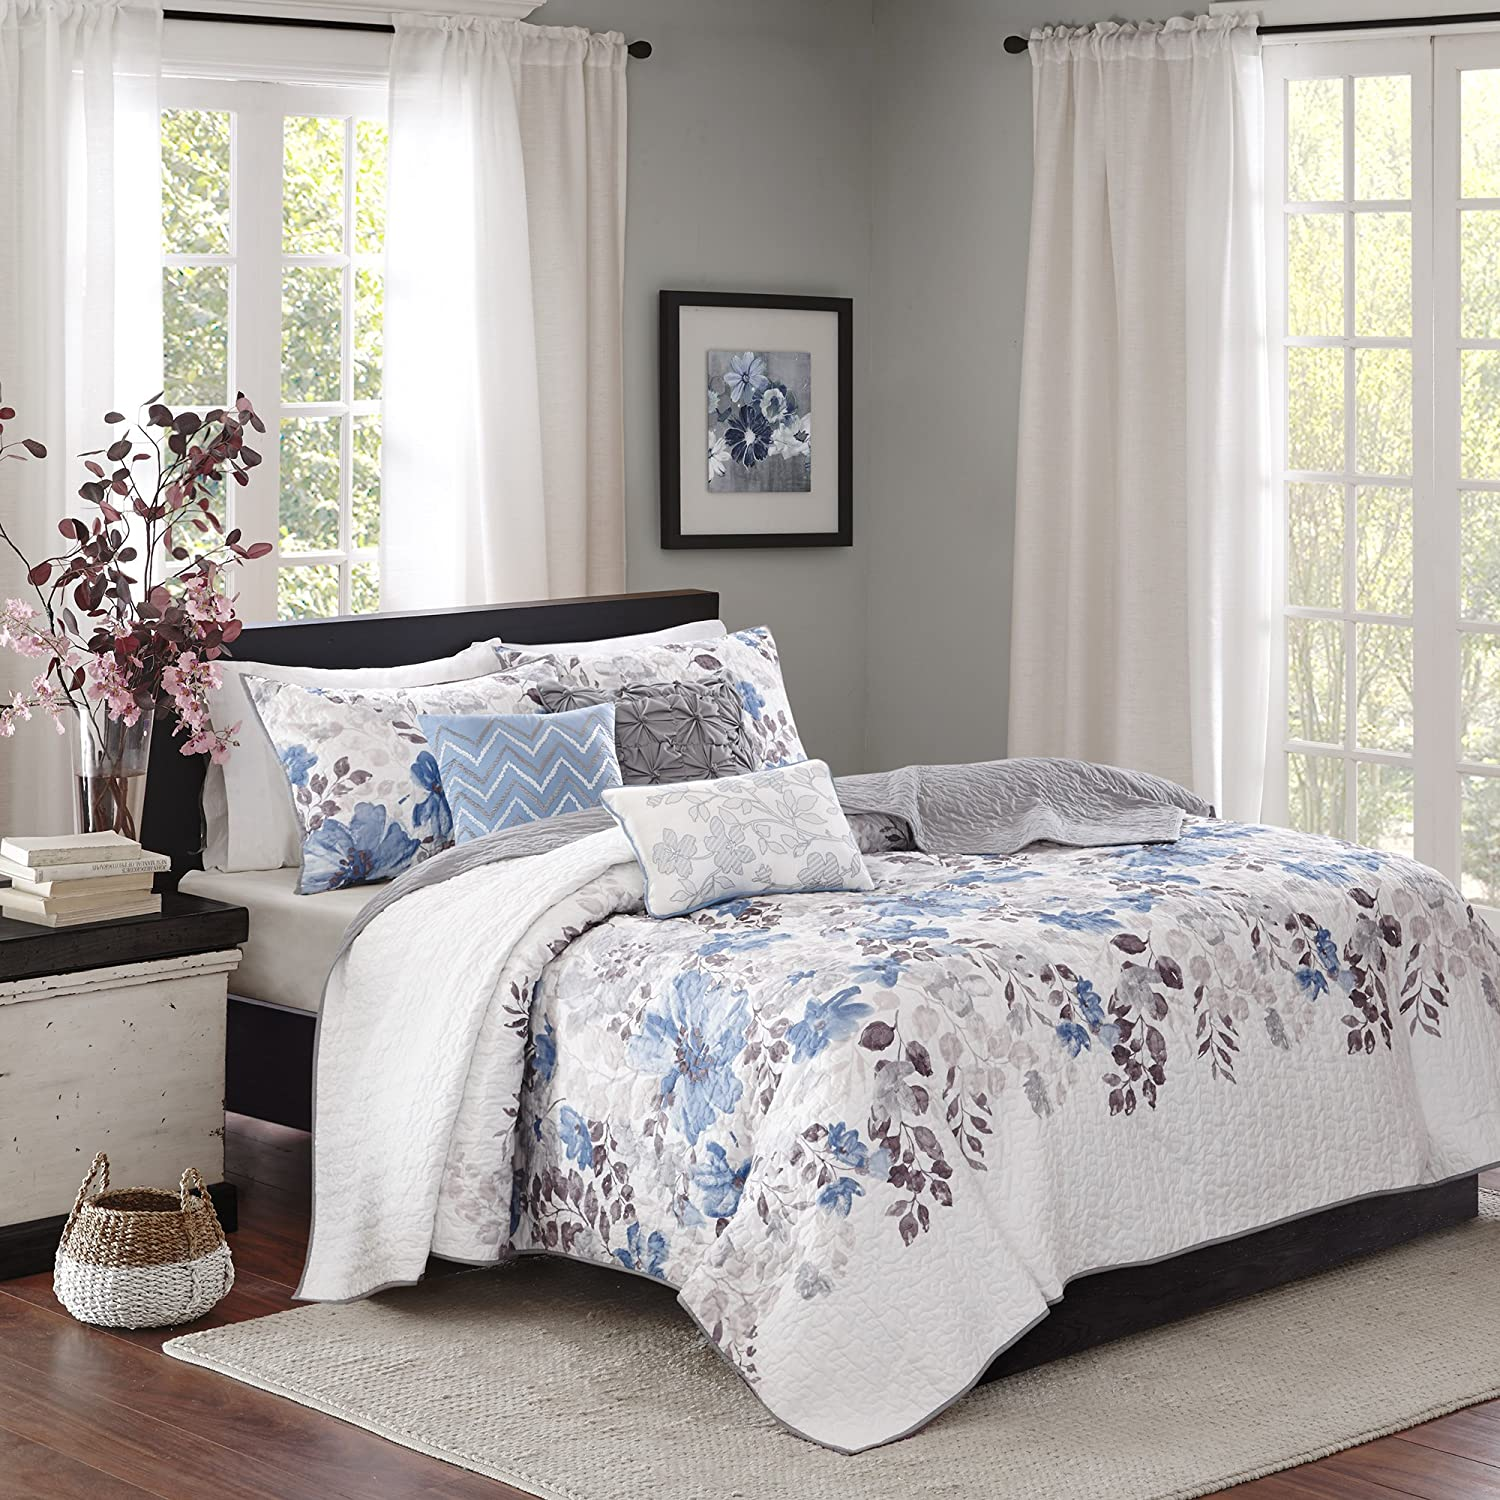 Madison Park Luna King Cal King Size Quilt Bedding Set - bluee, Plum, Floral, Leaf – 6 Piece Bedding Quilt Coverlets – Ultra Soft Microfiber with Cotton Filling Bed Quilts Quilted Coverlet